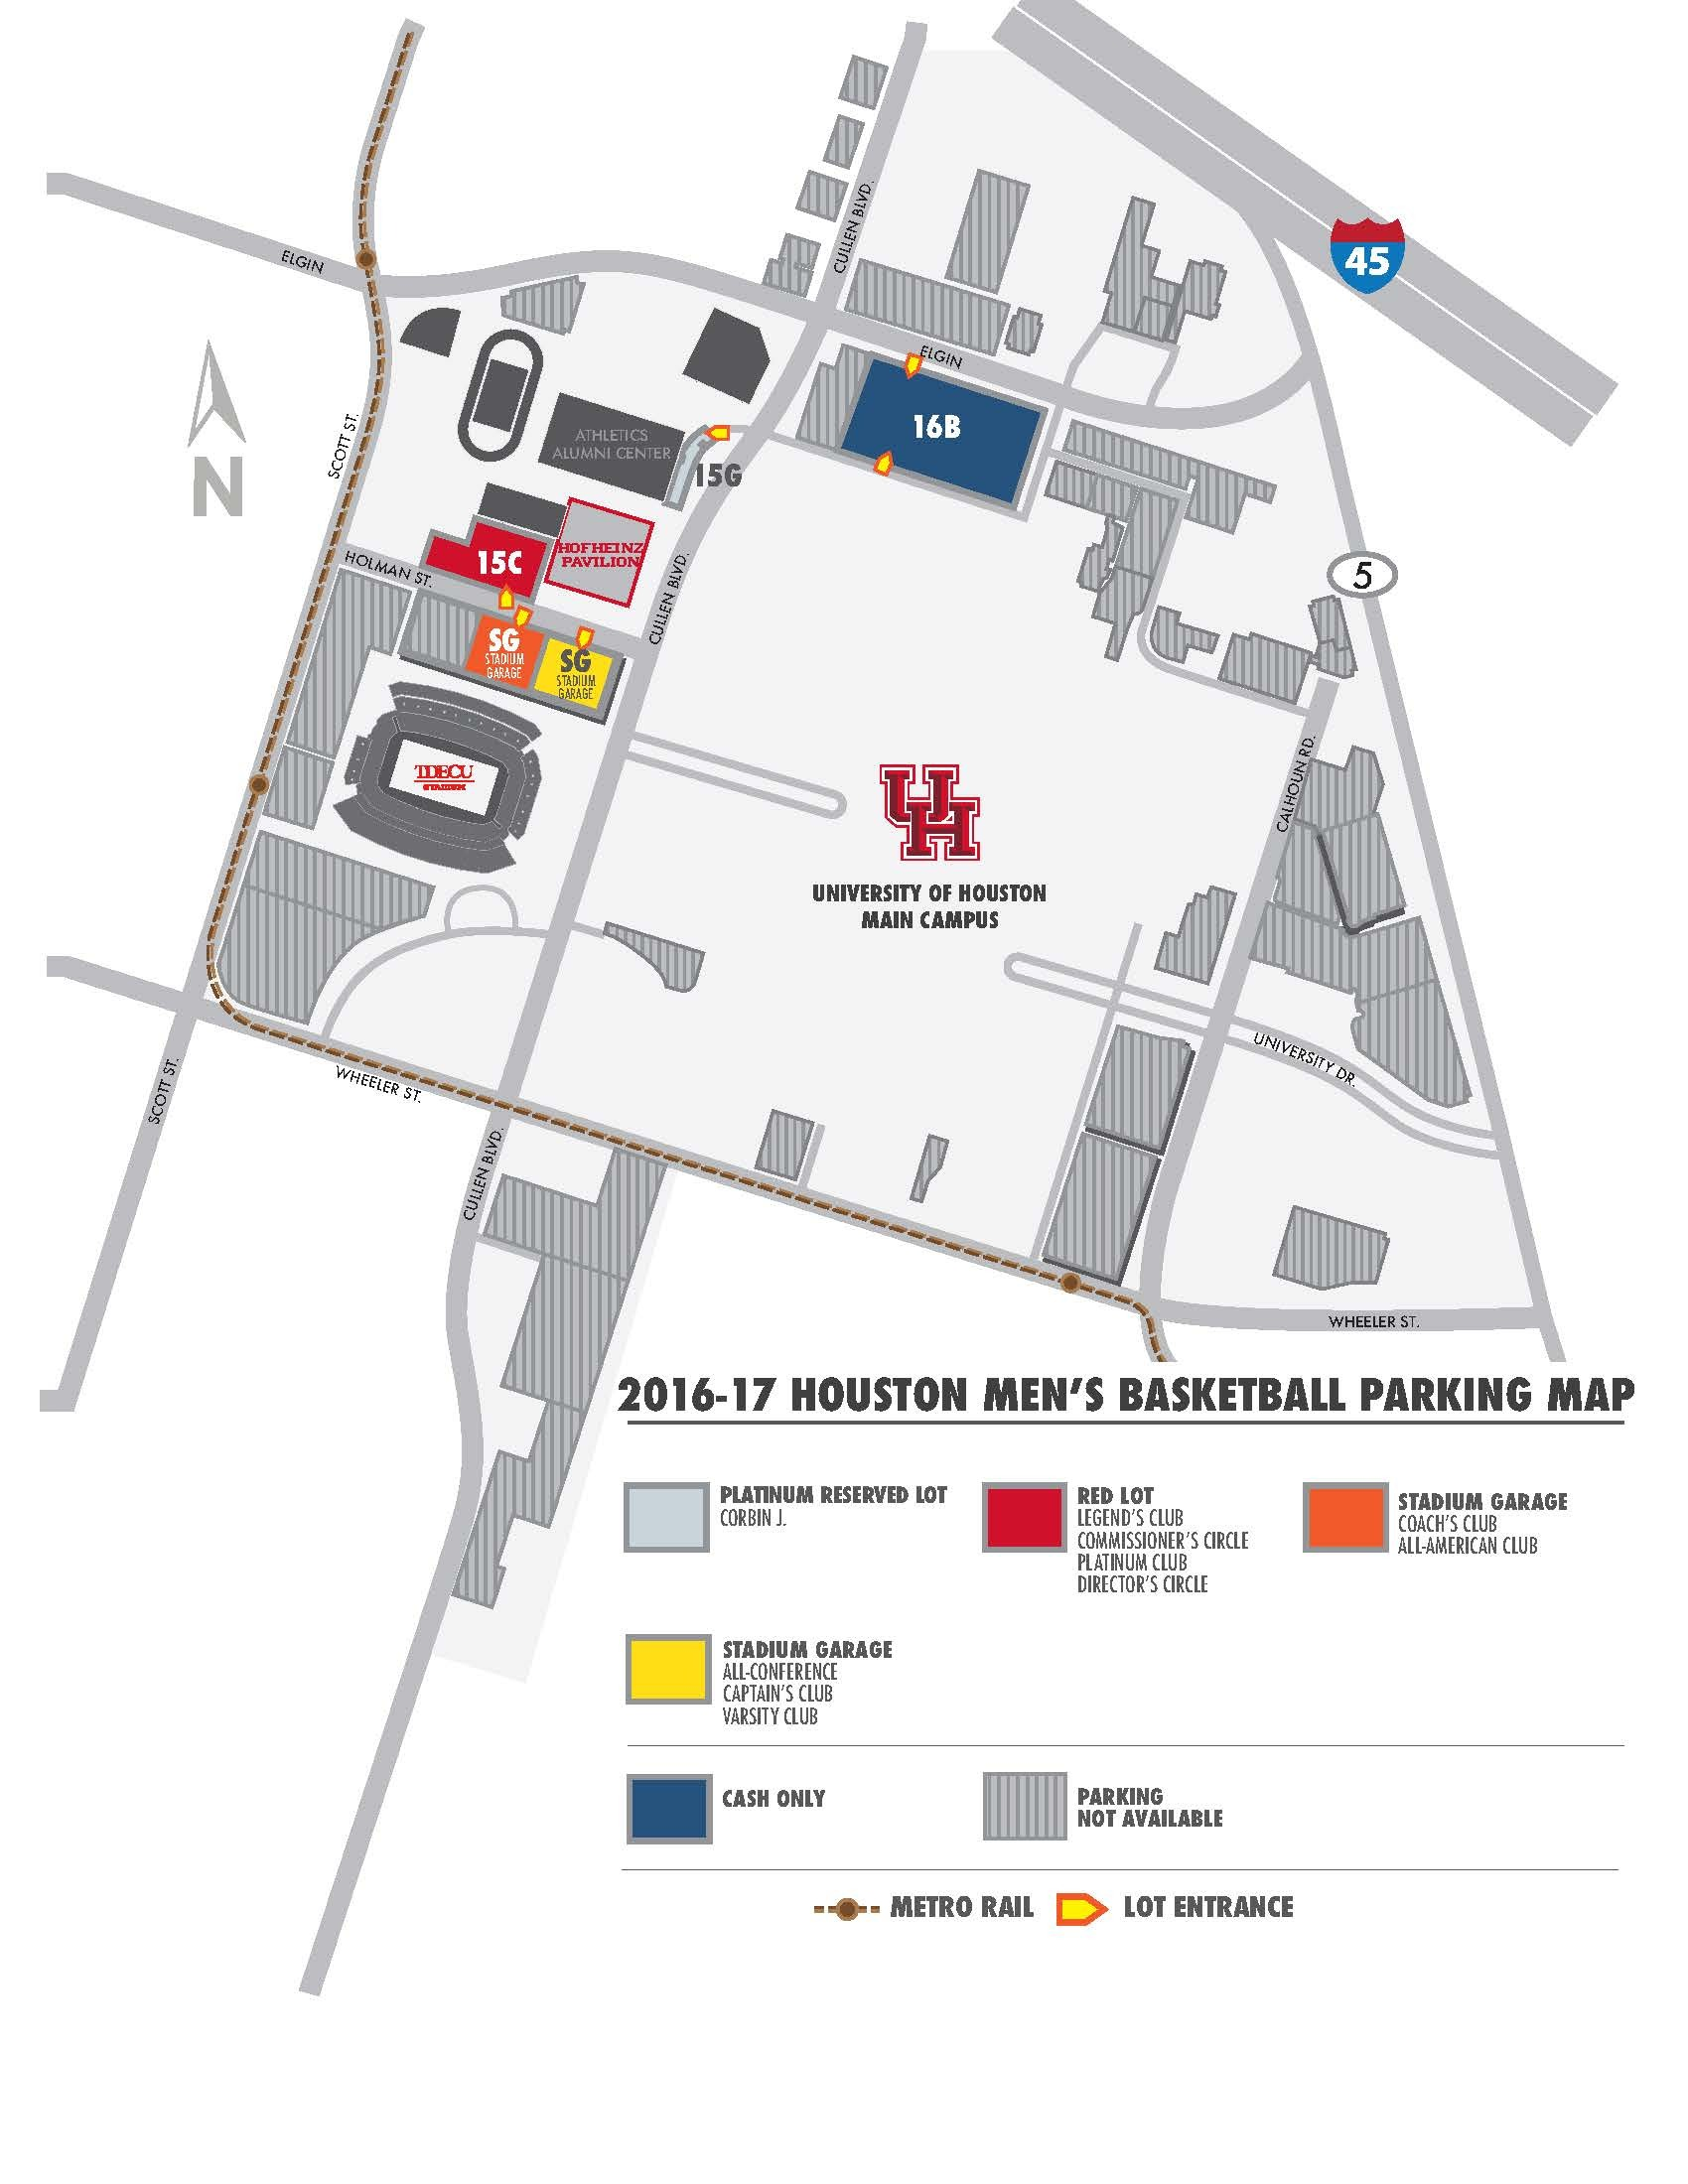 2016-17 Men's Basketball Parking Information - University of ... on york college campus map, uhv campus map, main campus map, st campus map, va campus map, ul campus map, jd campus map, phoenix college campus map, uhd campus map, unh campus map, ge campus map, hawaii campus map, fh campus map, uhcl bayou building map, u of h map, ma campus map, uk campus map, honolulu community college campus map, morehead campus map, uw campus map,